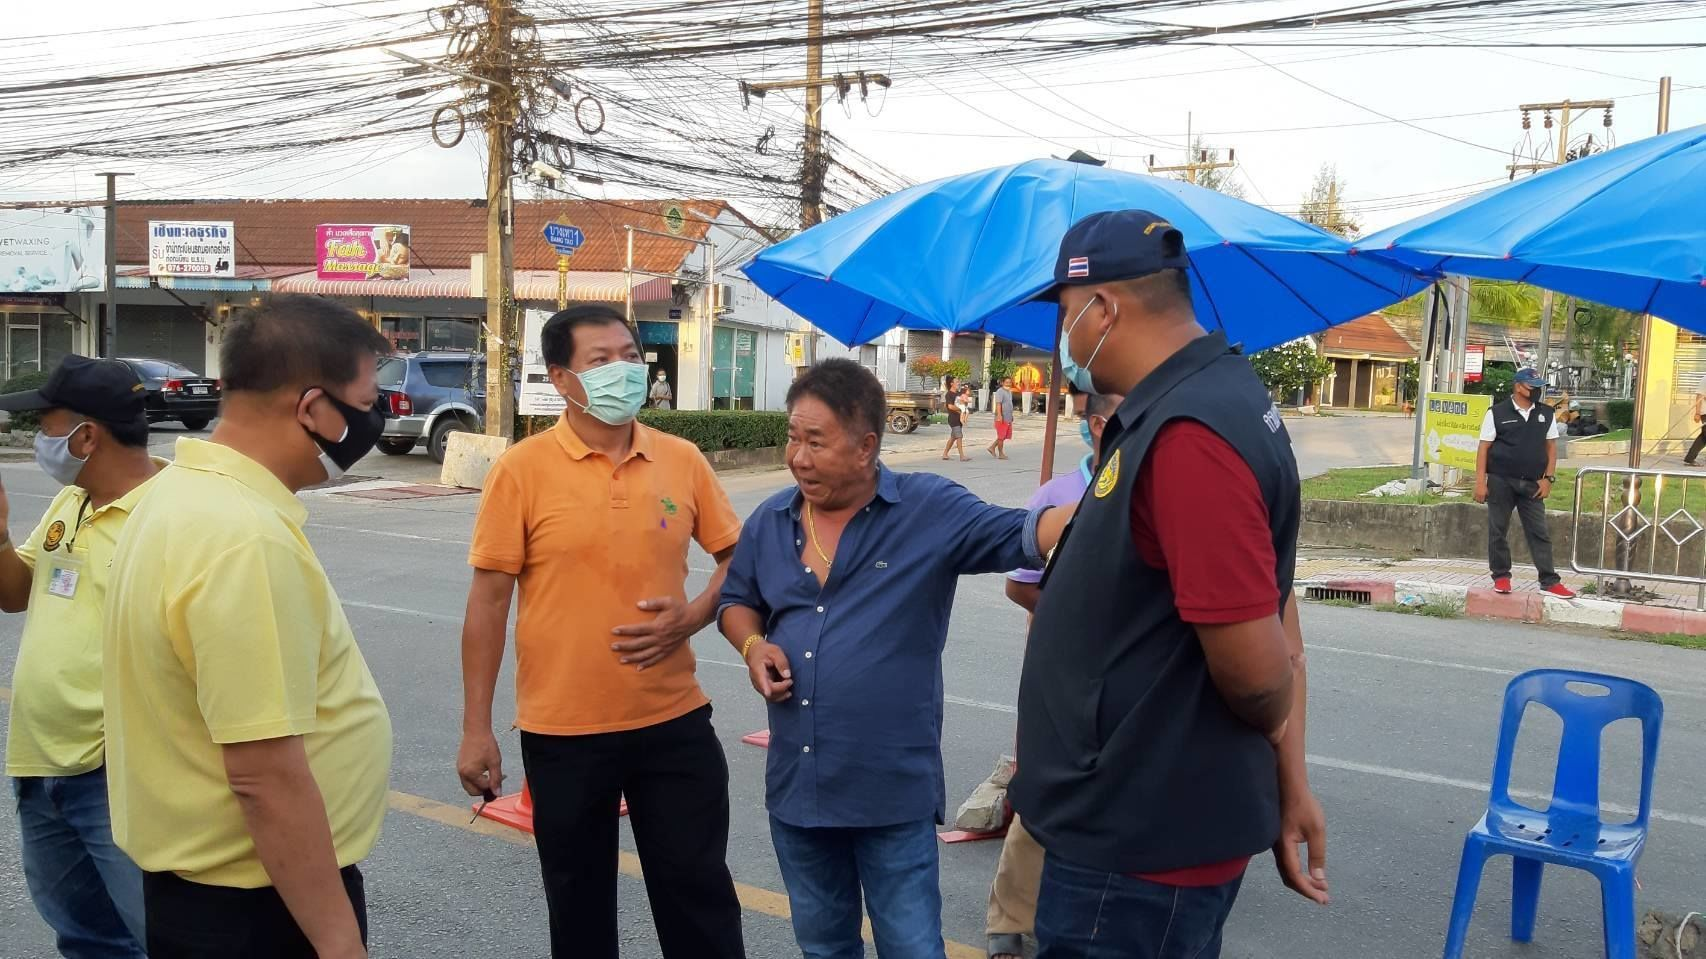 Phuket's Bang Tao tambon erupts over continued restrictions | News by The Thaiger